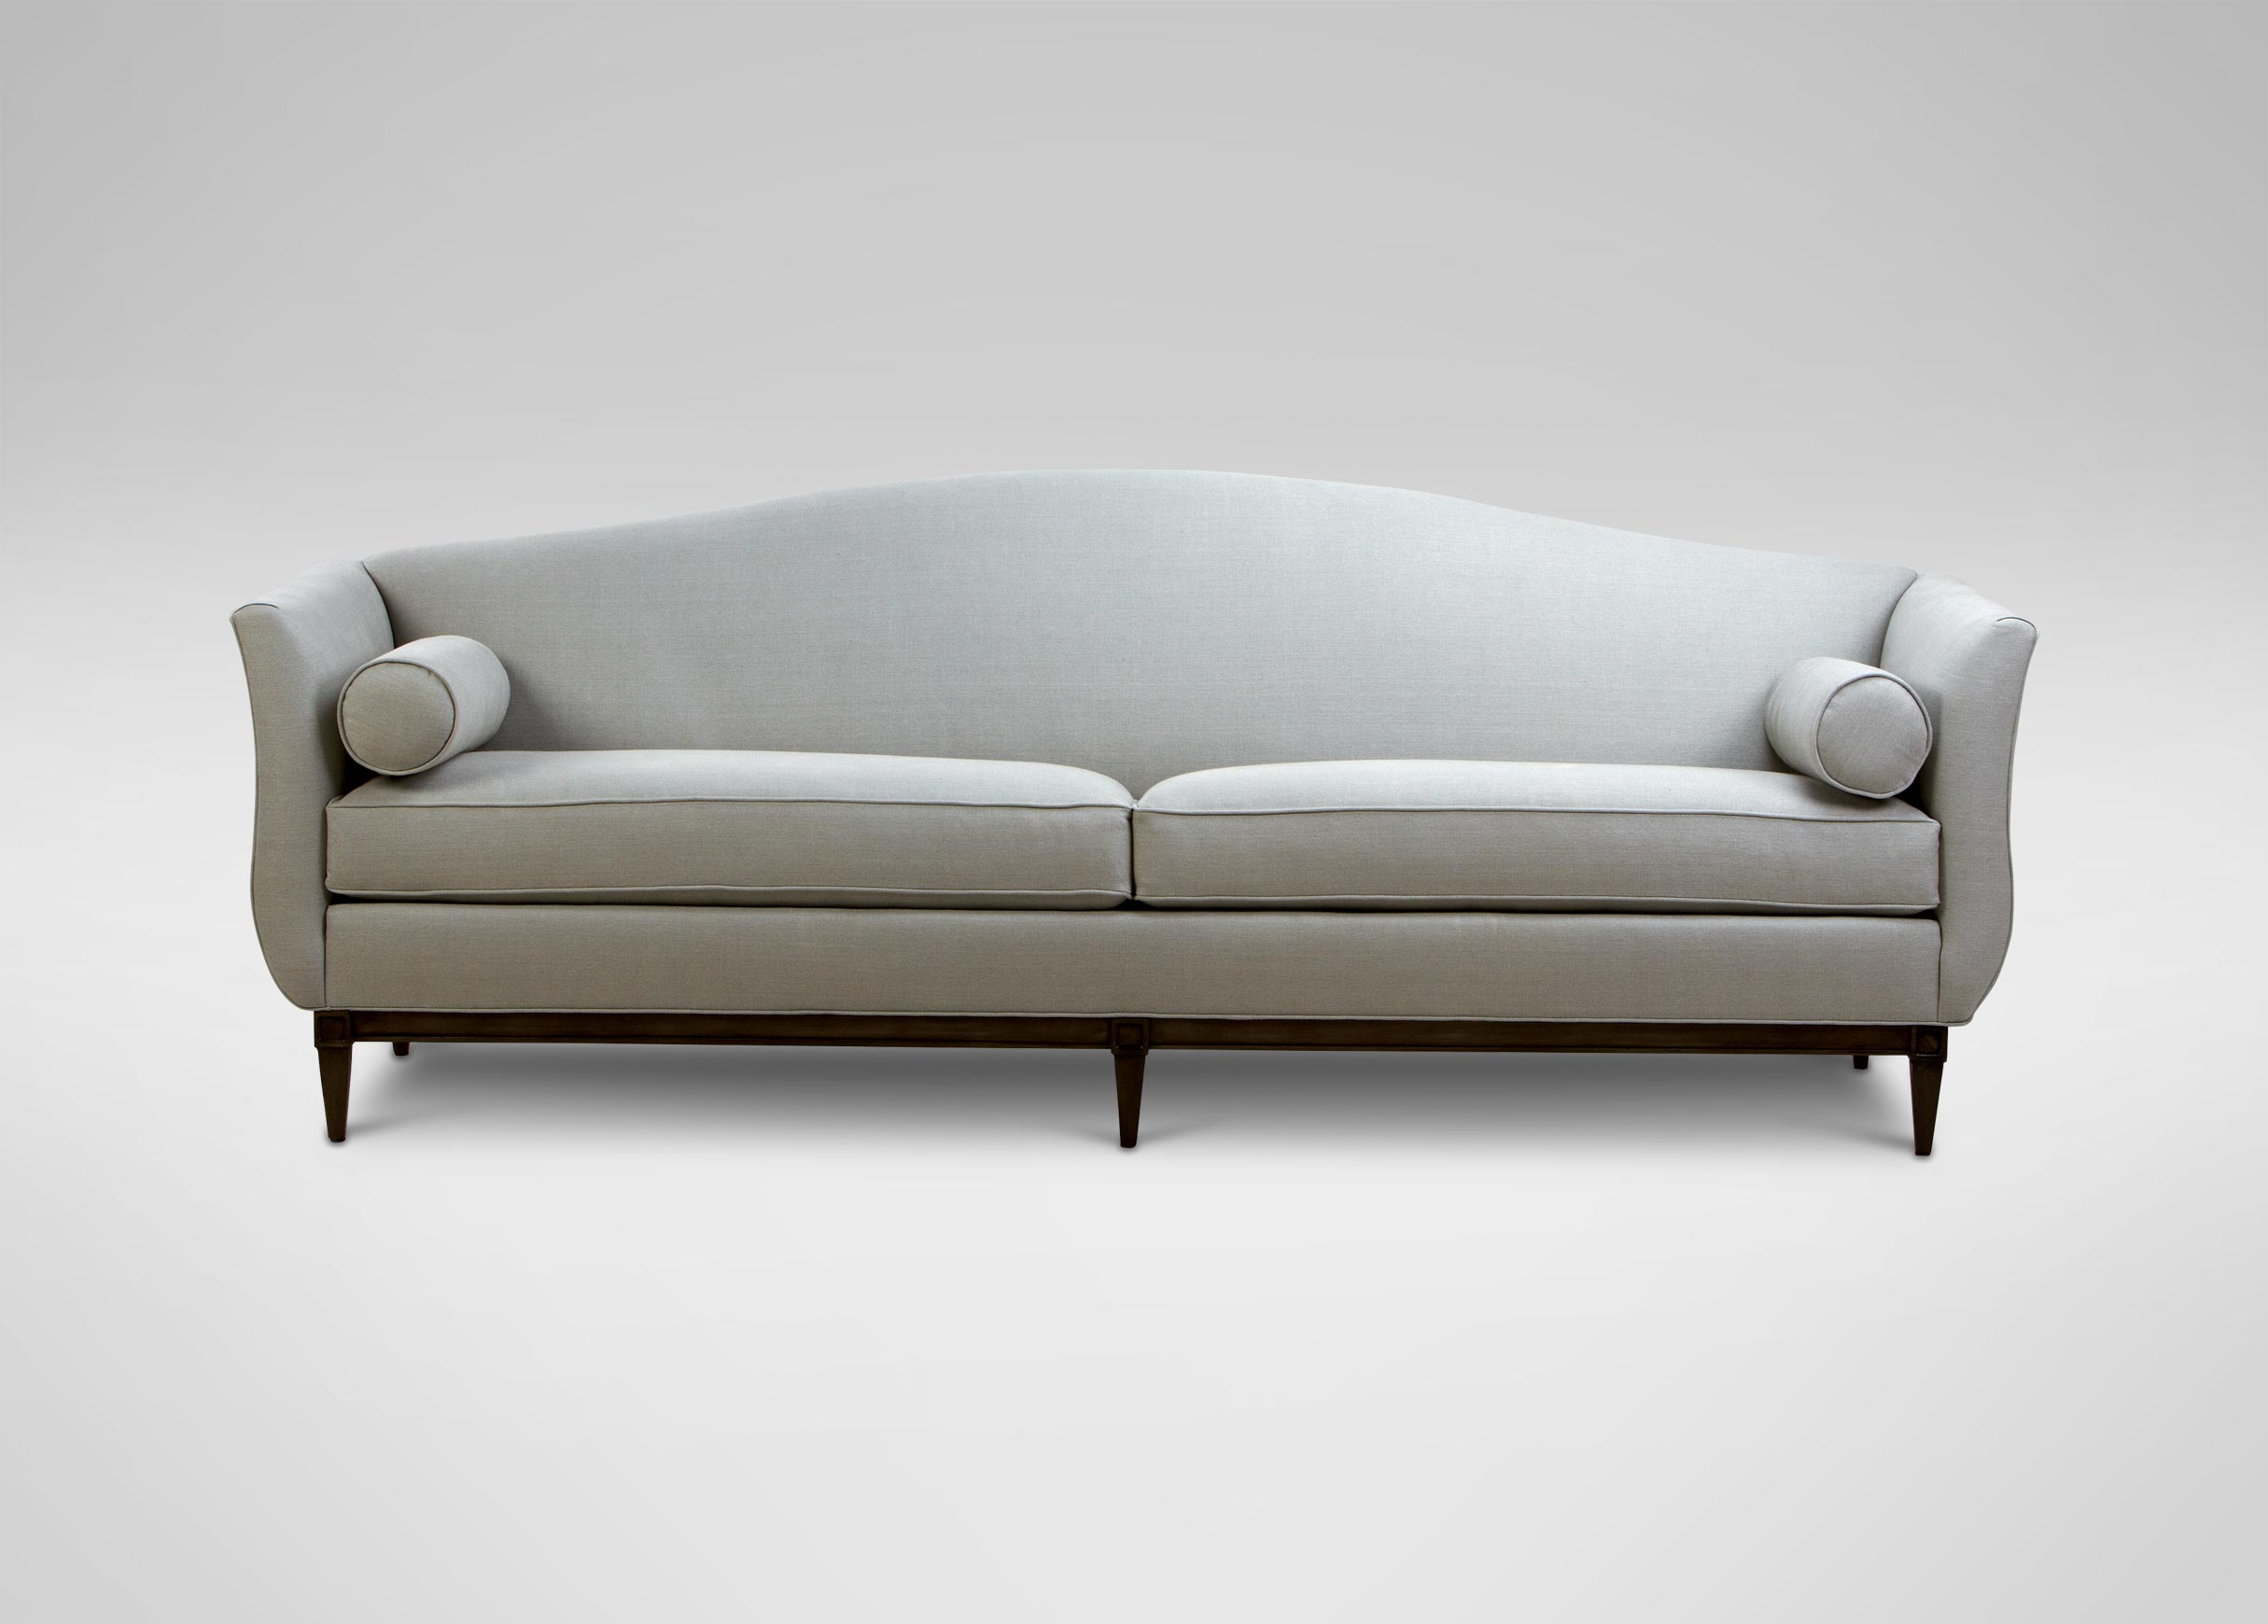 Gorgeous Ethan Allen Sofas 57 For Your Contemporary Sofa Inspiration with Ethan Allen Sofas